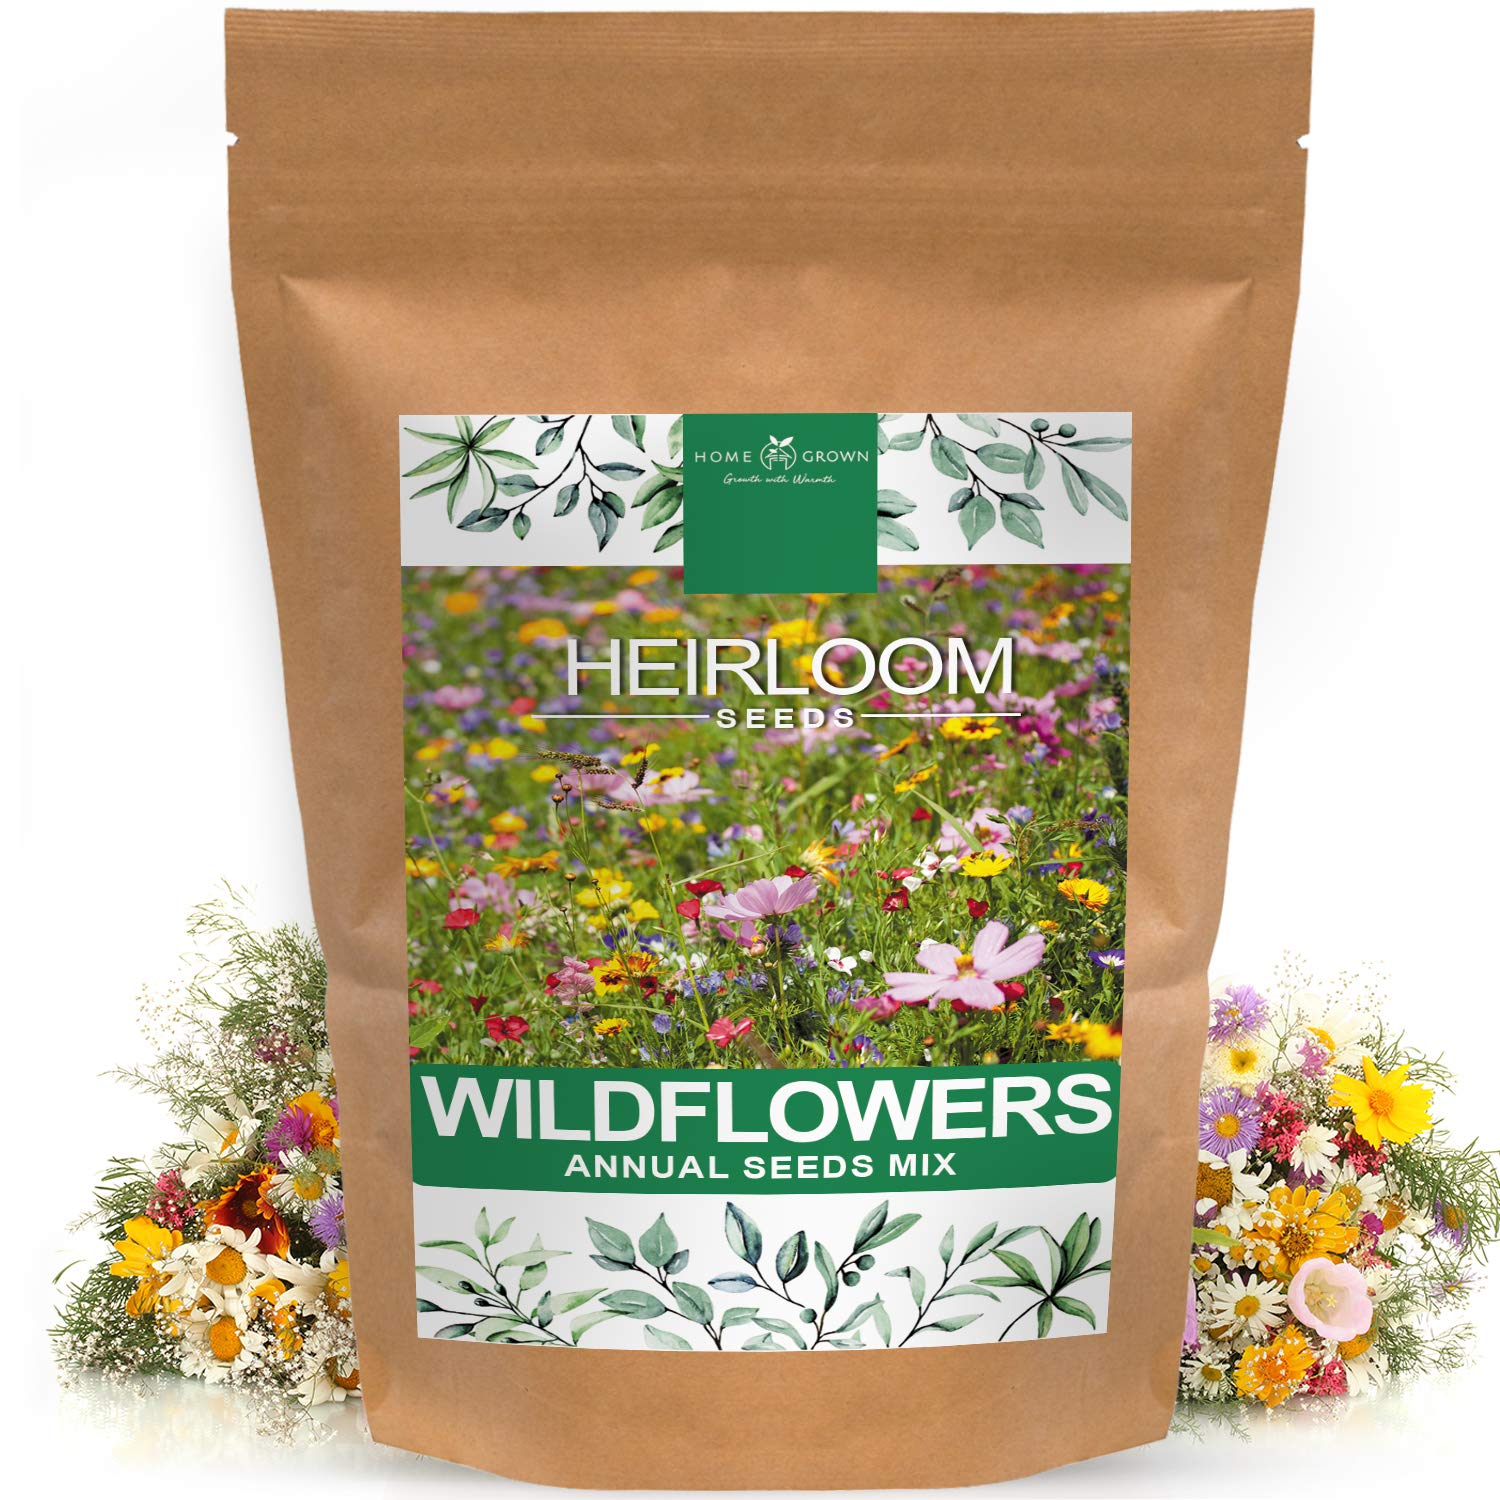 Wildflower Seeds   Mix of 21 Different Varieties of Non-GMO Wildflower Seeds   Bee and Butterfly Garden Seeds   Colorful Annual Flower Seeds   American Wildflower Seeds for Your Garden